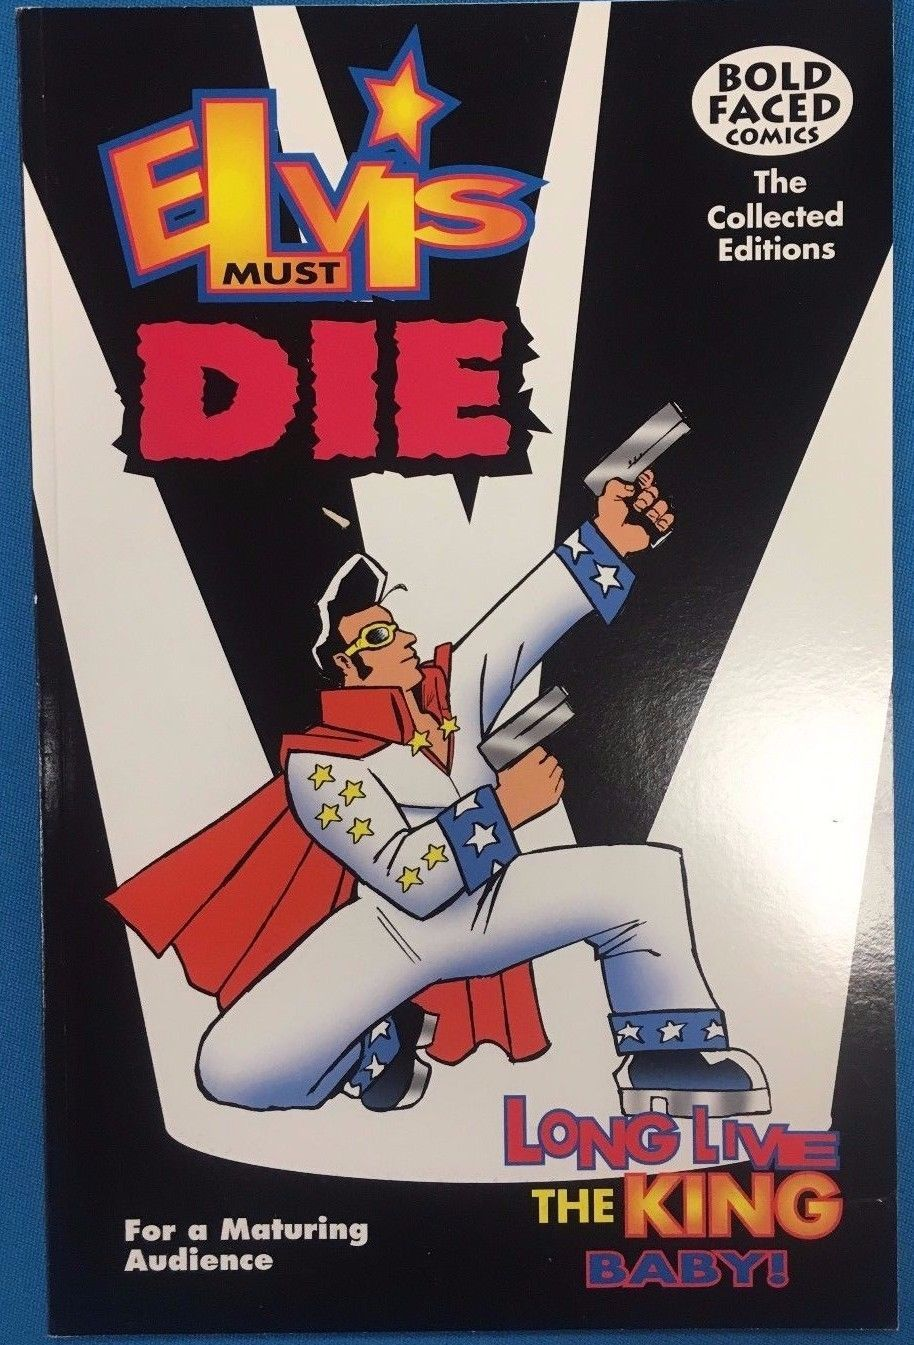 ELVIS MUST DIE Long Live the King Baby! (2000) Bold Faced Comics signed SqB FINE